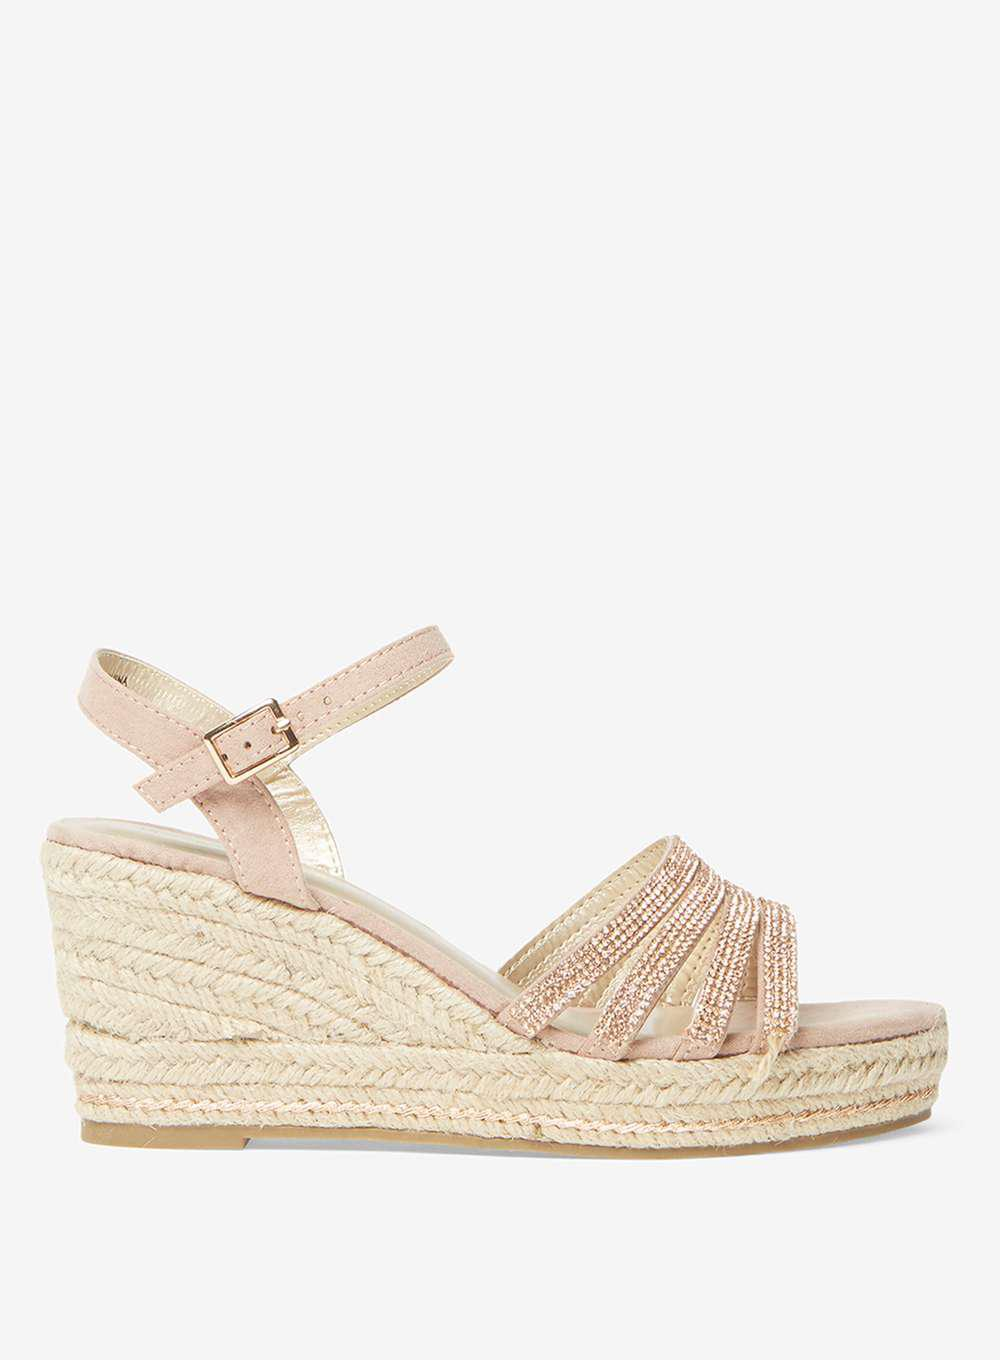 33ad47a14a9 Dorothy Perkins Rose Riley Pink Espadrille Wedge Sandals in Pink - Lyst